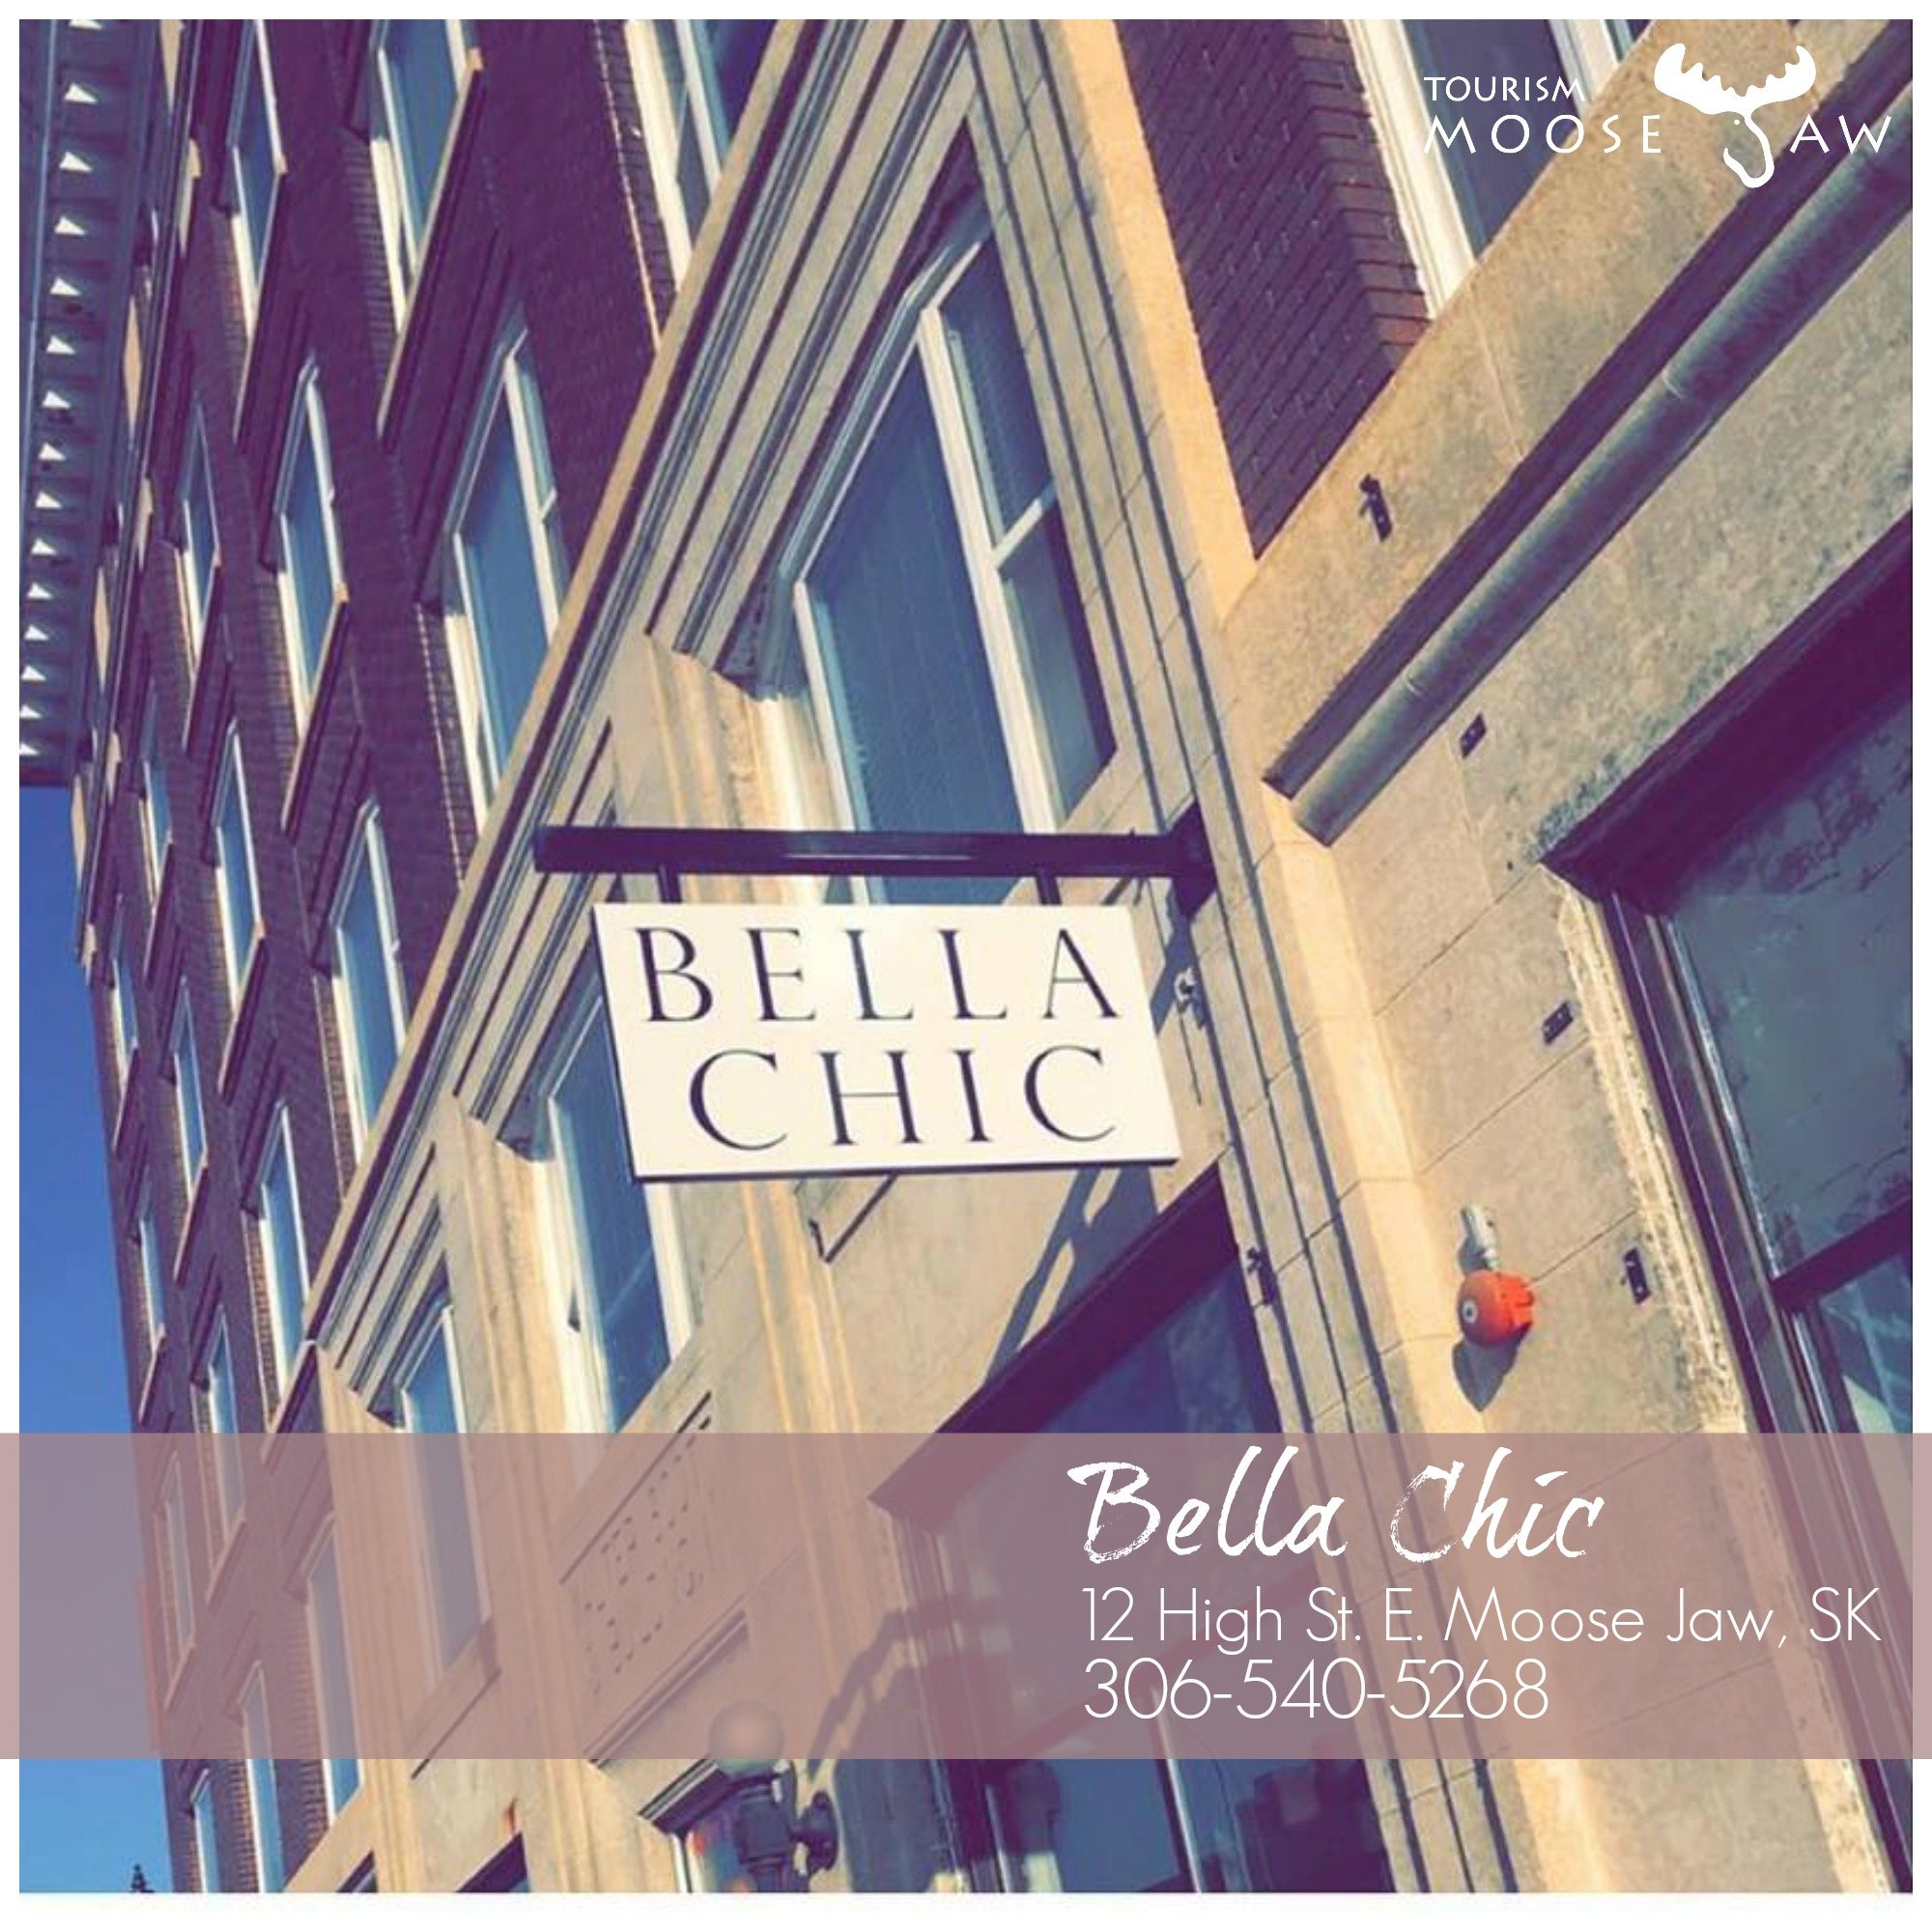 bella chic.jpg